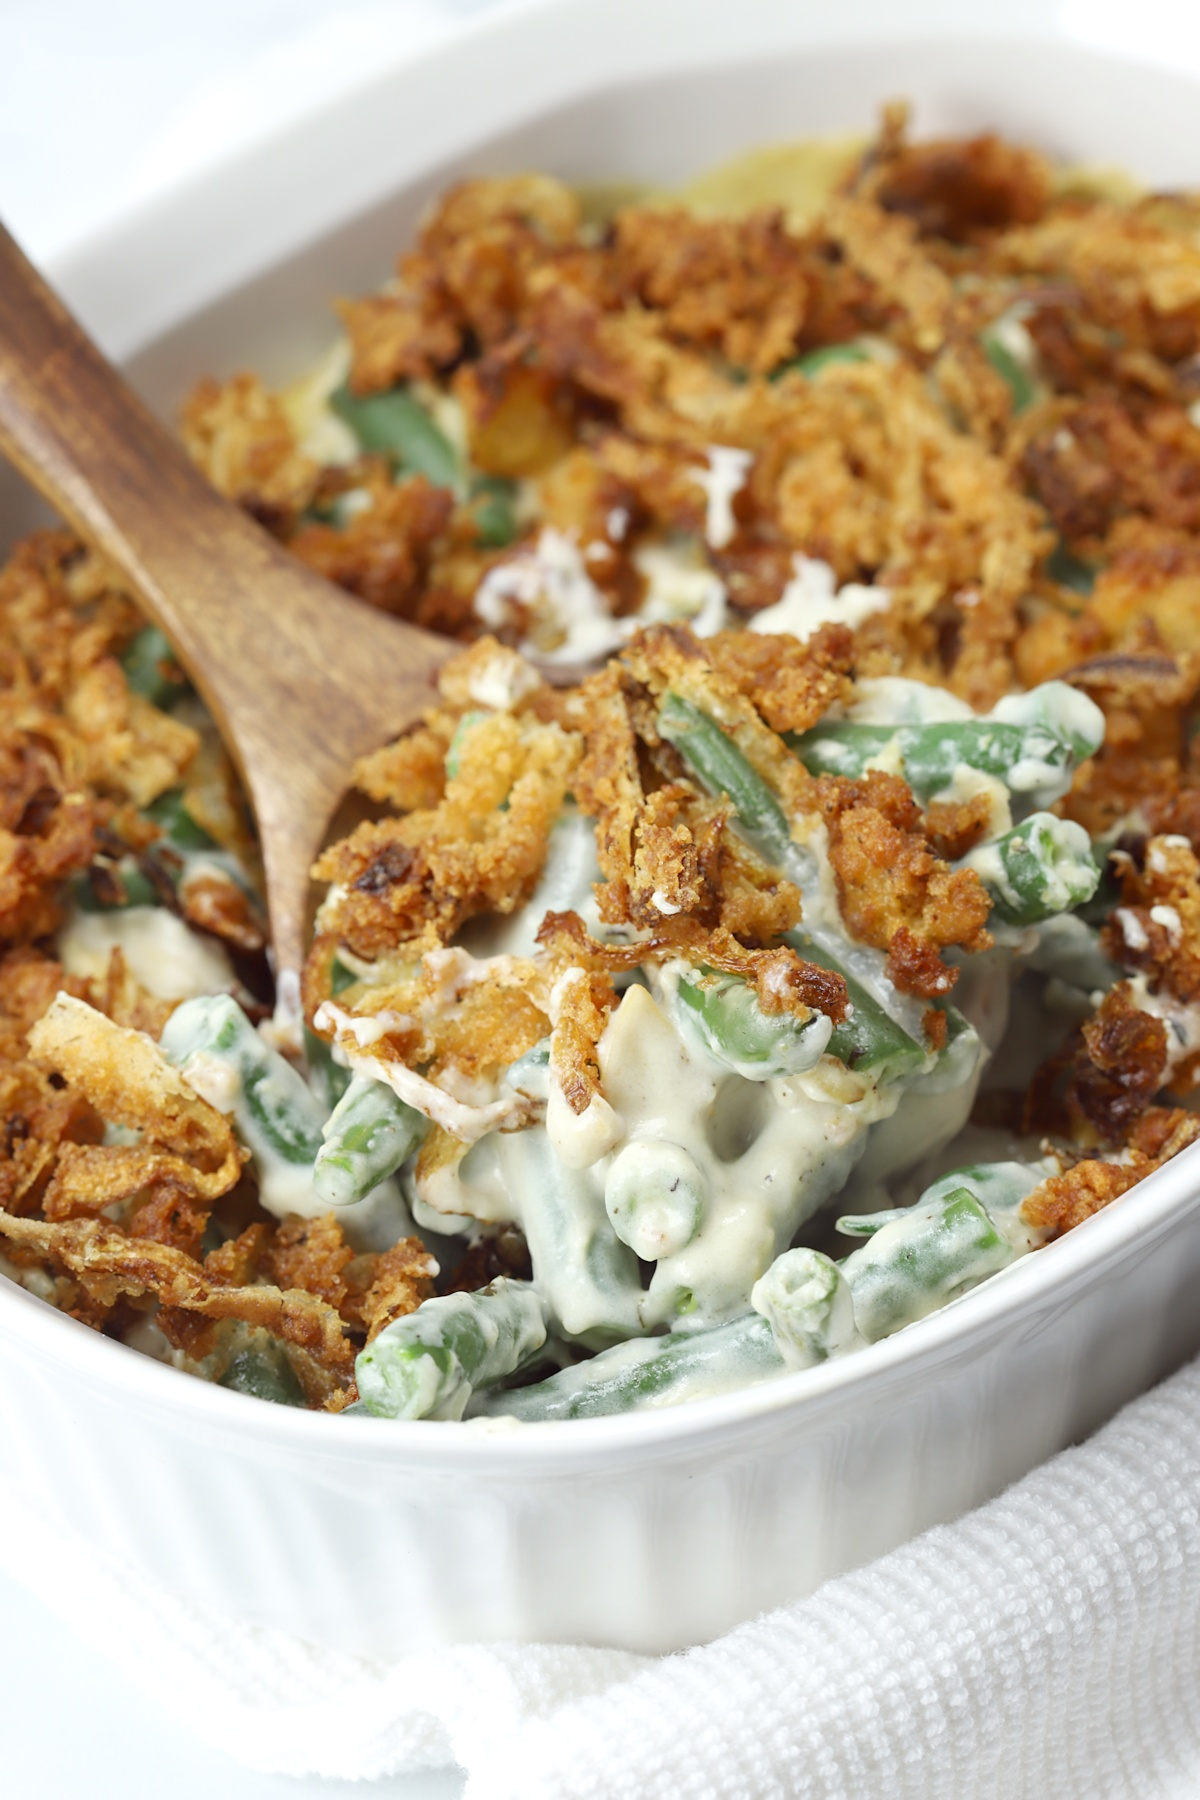 A wooden spoon scoops a serving of green bean casserole.